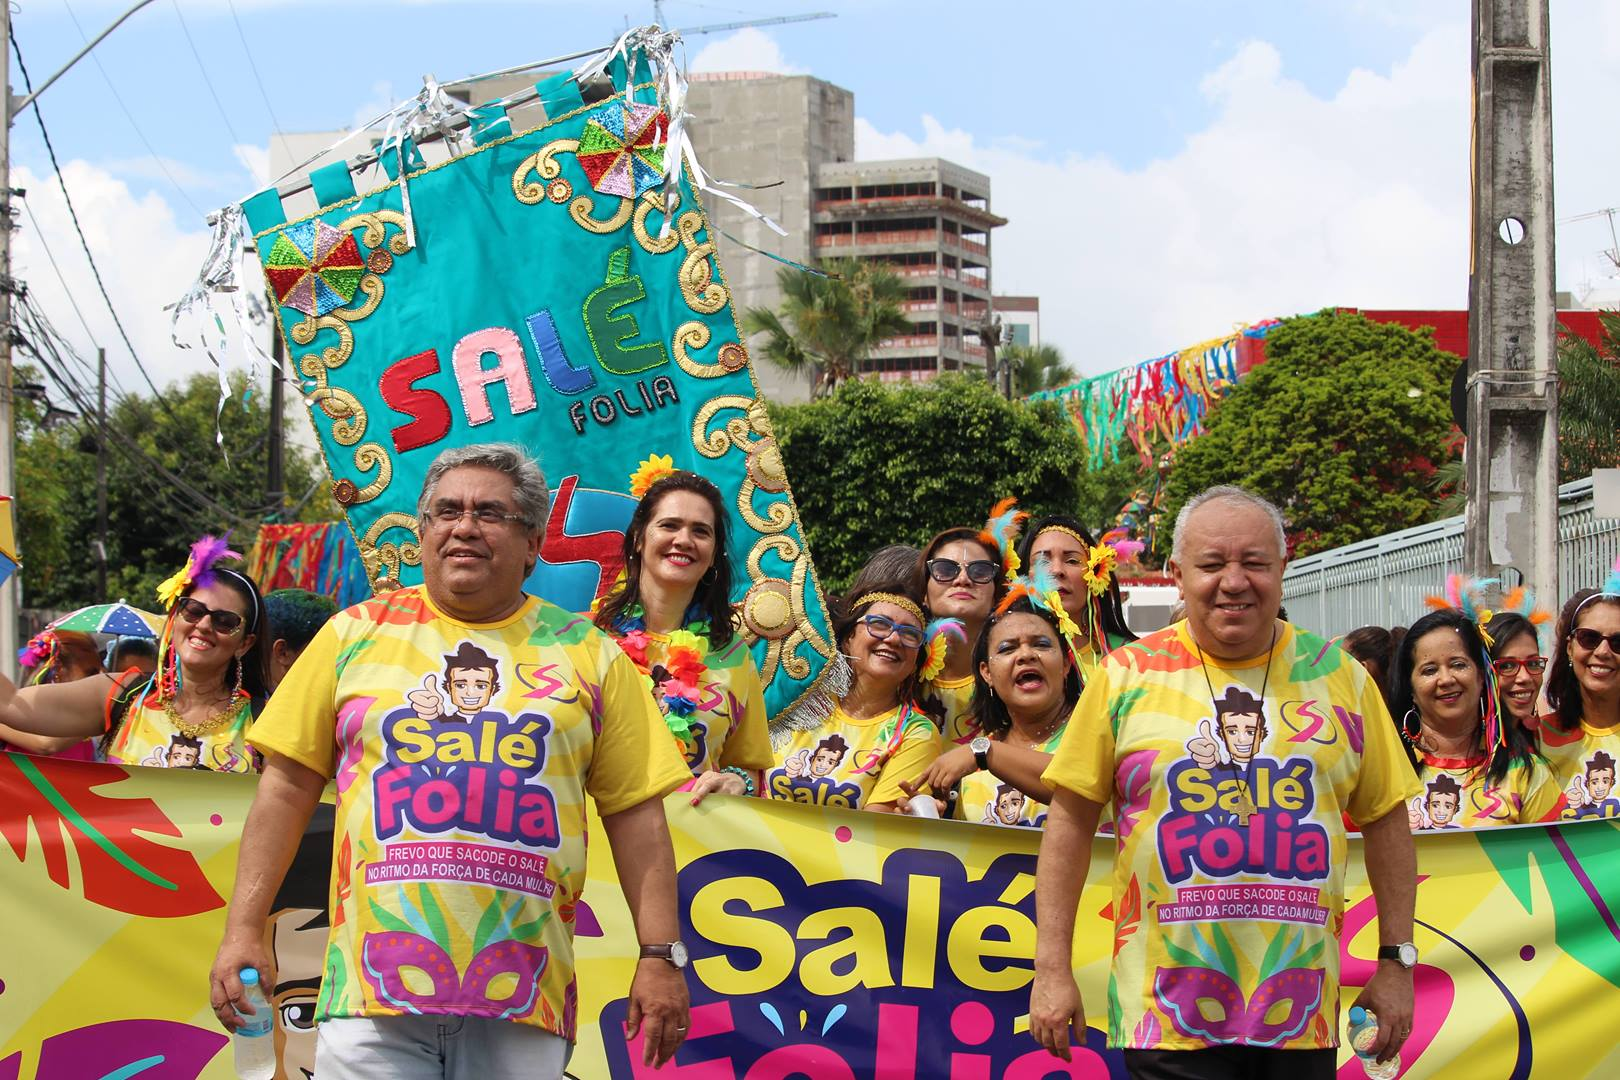 TV SALÉ: Salé Folia 2019